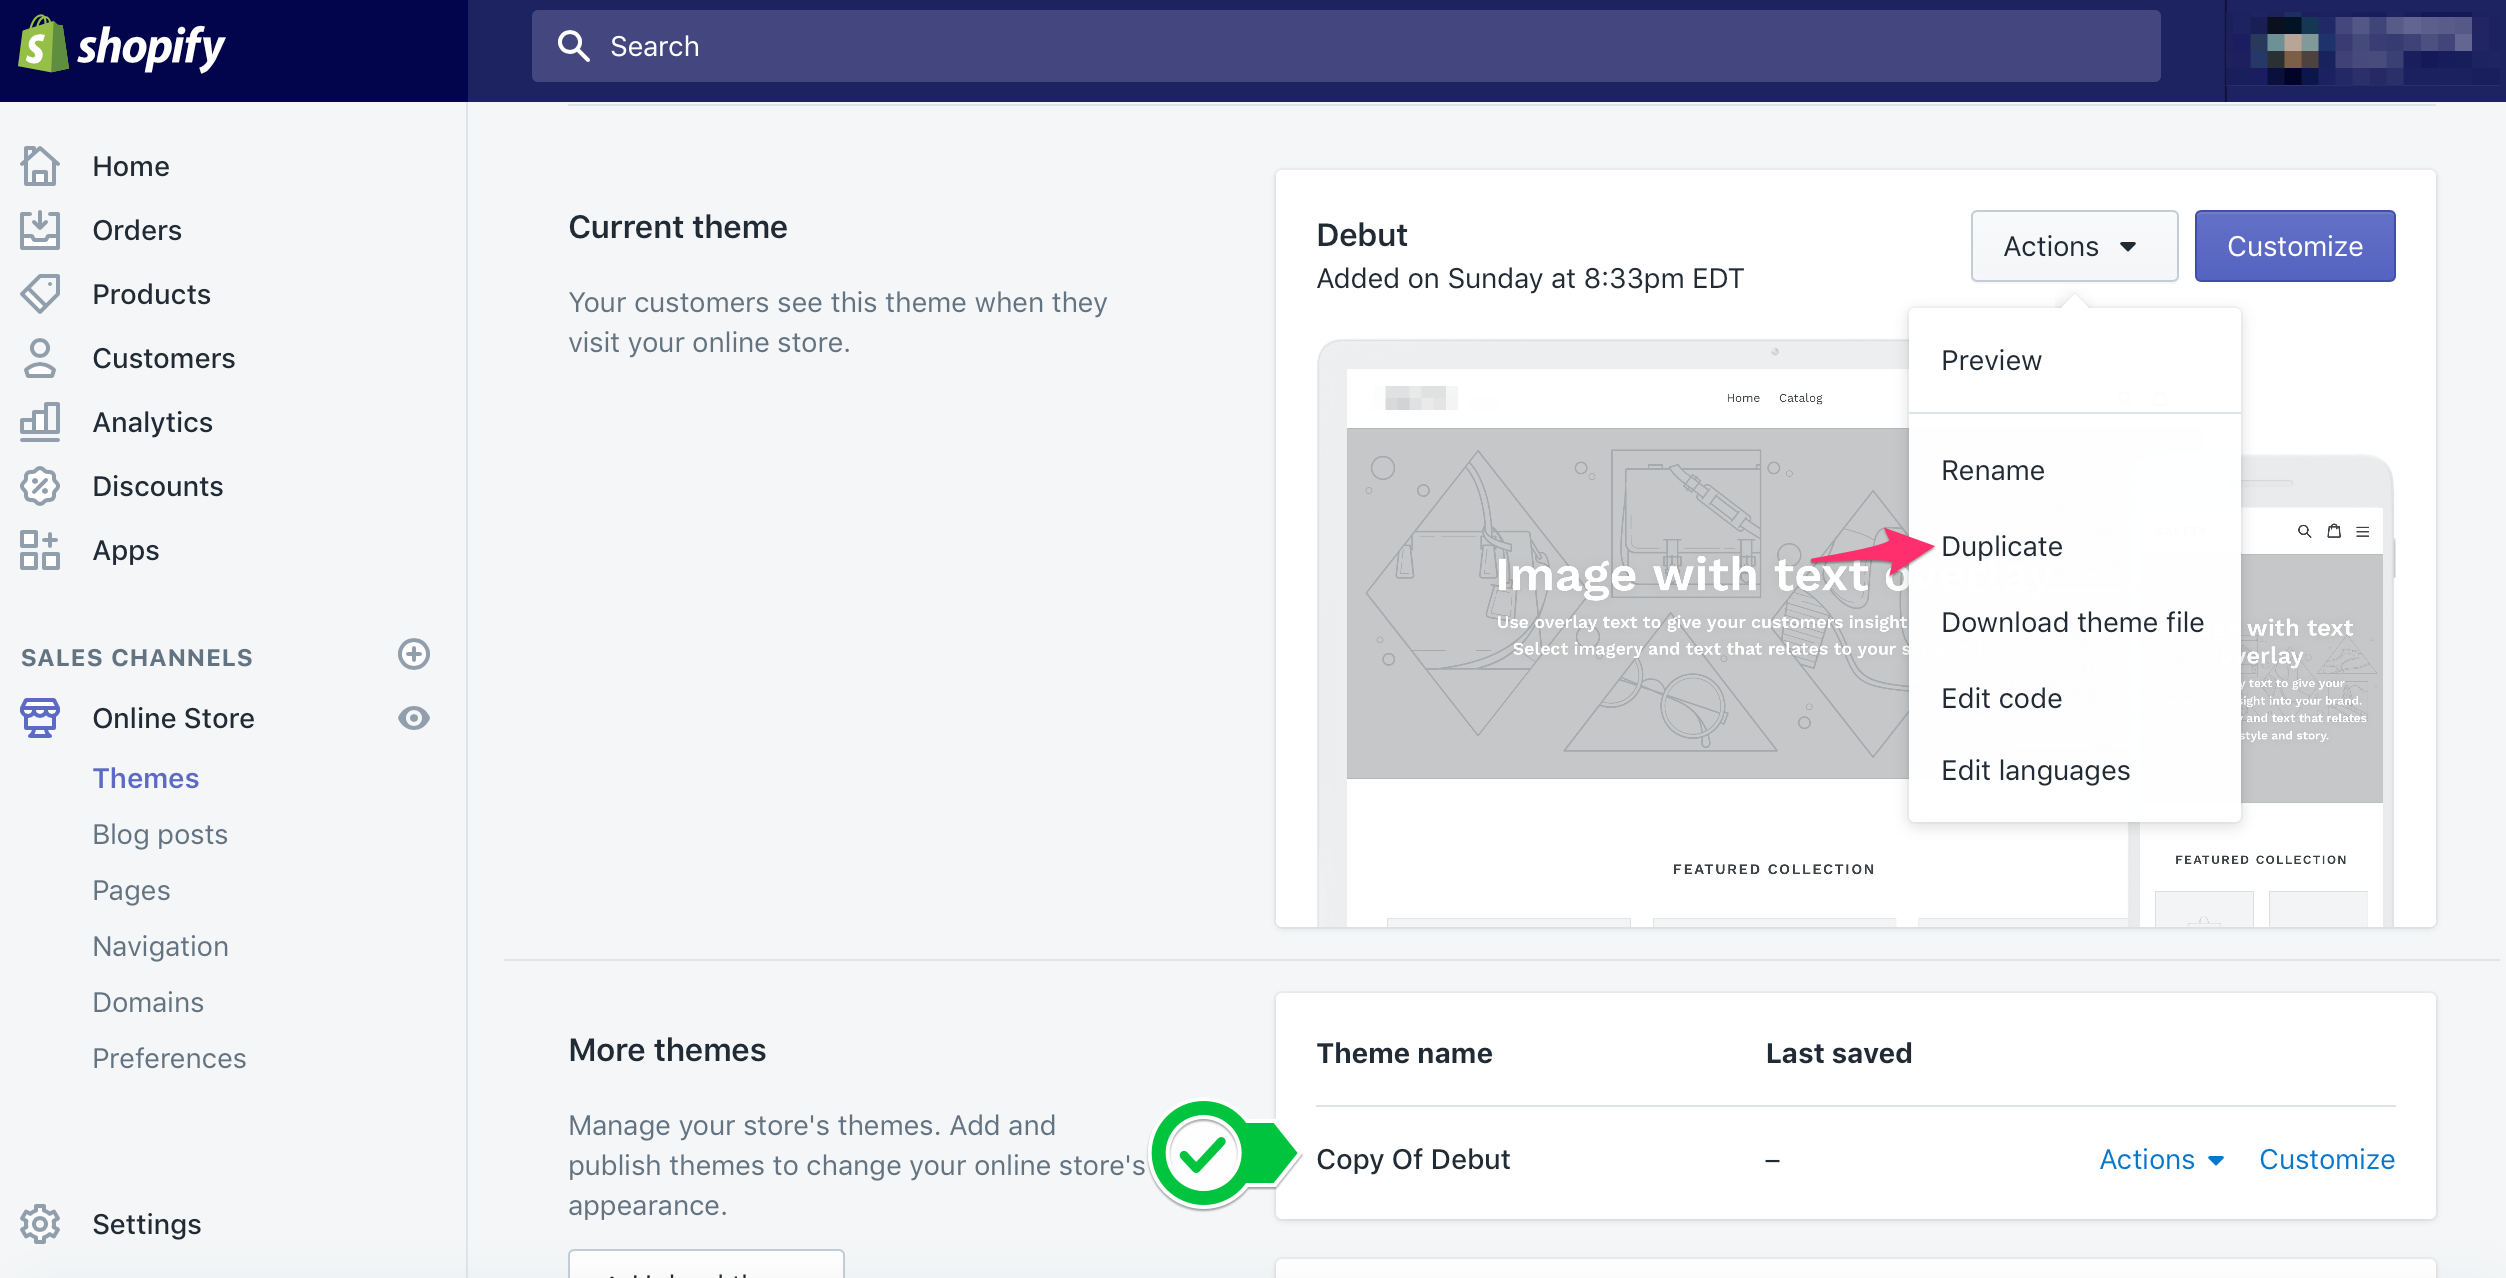 Duplicate Shopify theme screenshot